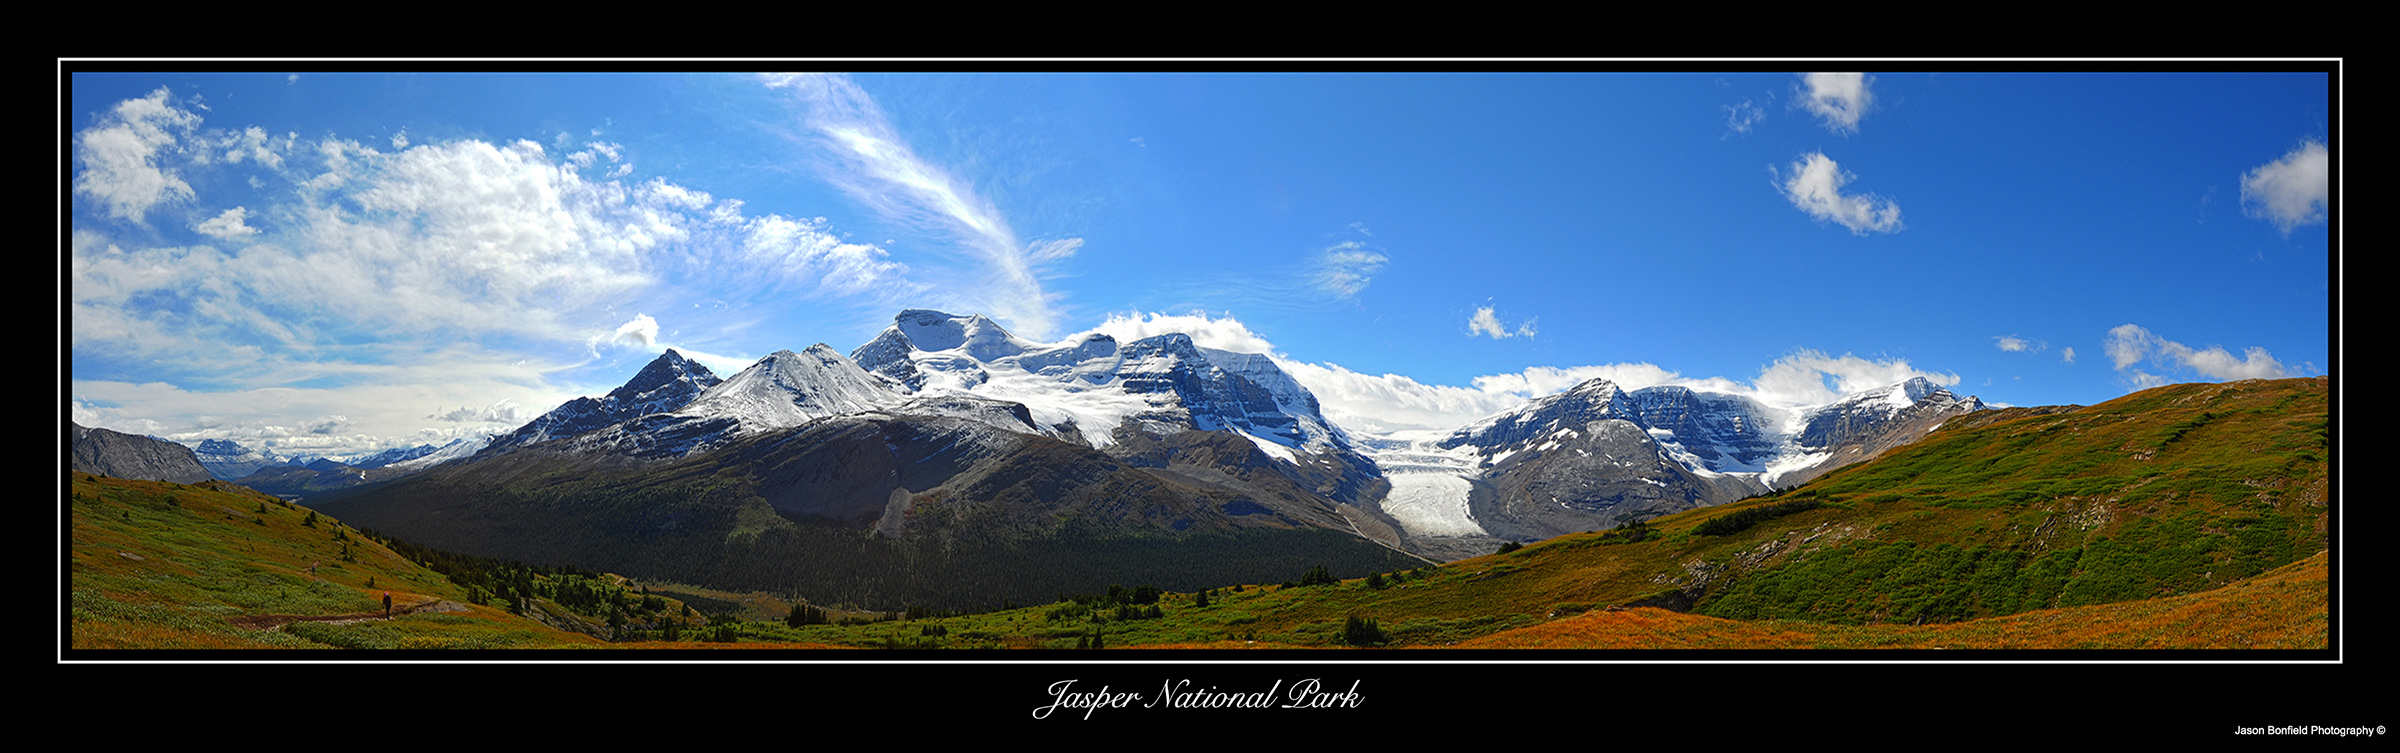 Panoramic landscape picture of mountains, glaciers and blue sky with white clouds in Jasper National Park in Alberta, Canada.